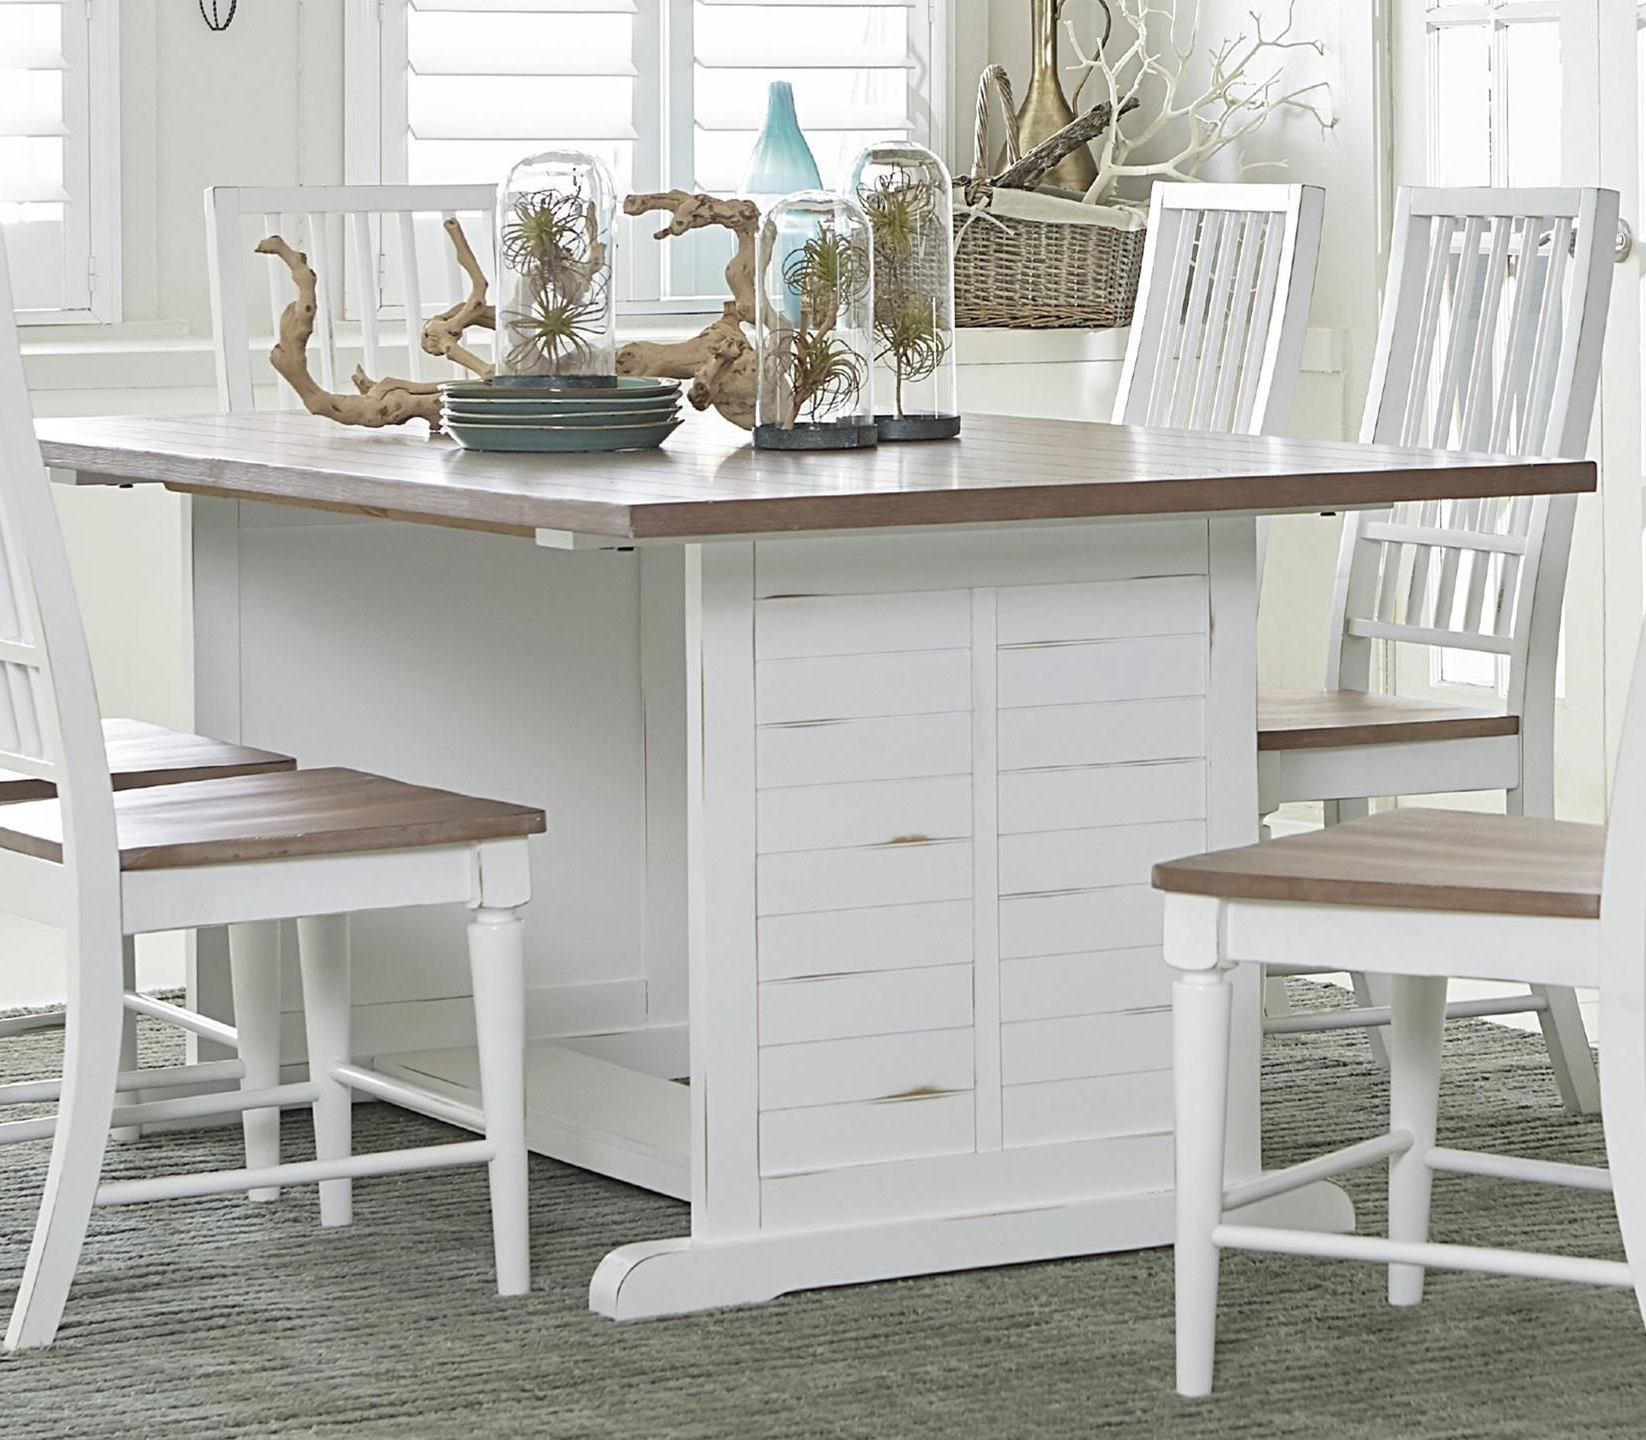 Most Recently Released Transitional Rectangular Dining Tables Inside Progressive Furniture Shutters Transitional Rectangular (View 12 of 30)